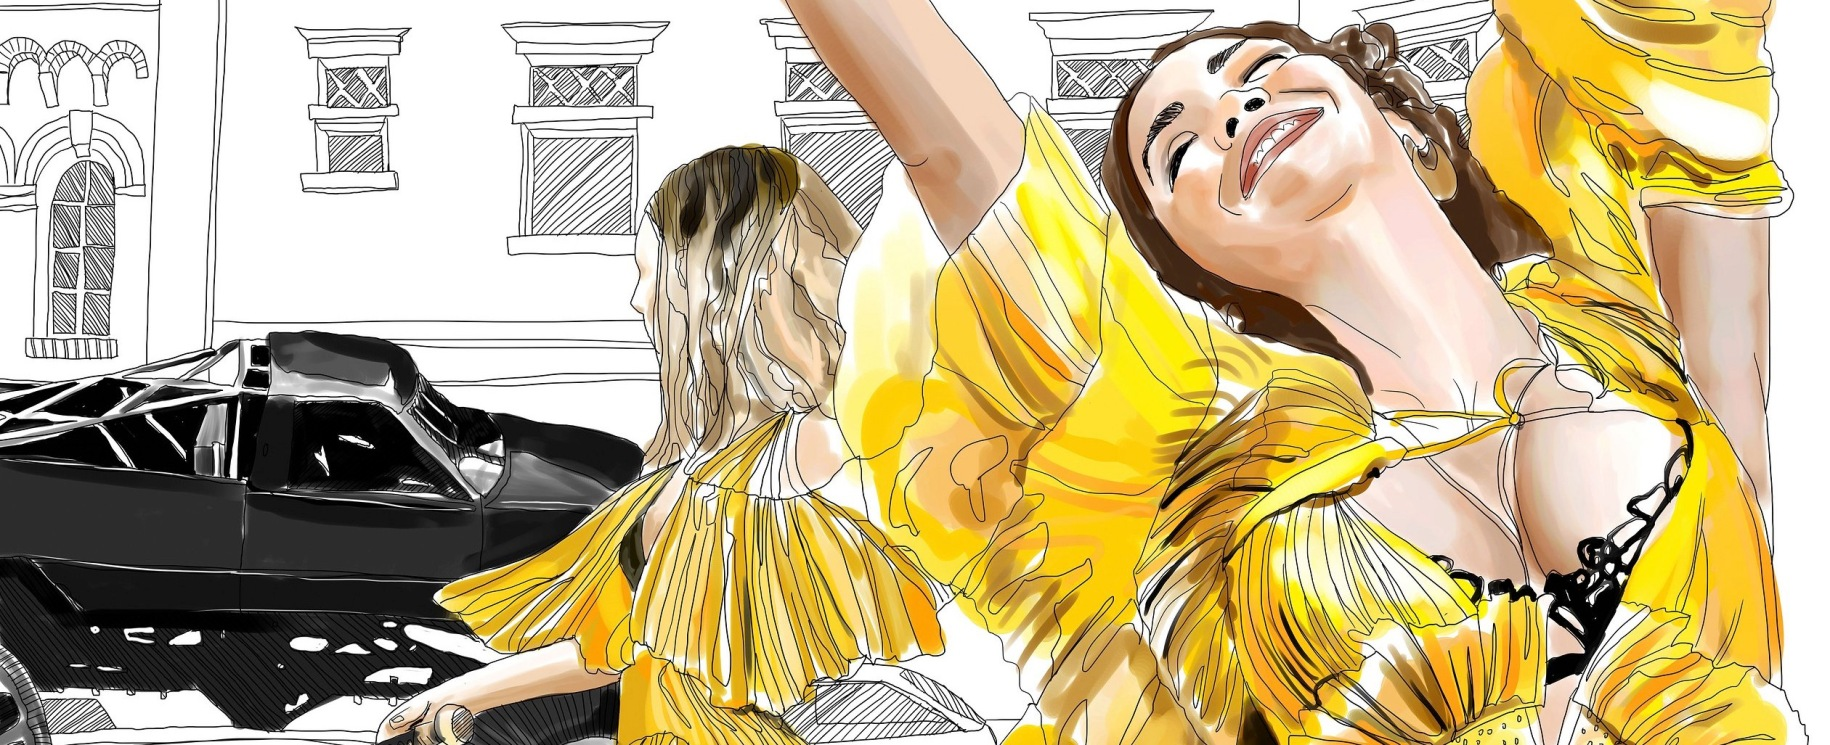 From #colormelemonade -- five illustrated scenes from Beyoncé's visual album, Lemonade. The images are available to download and color.